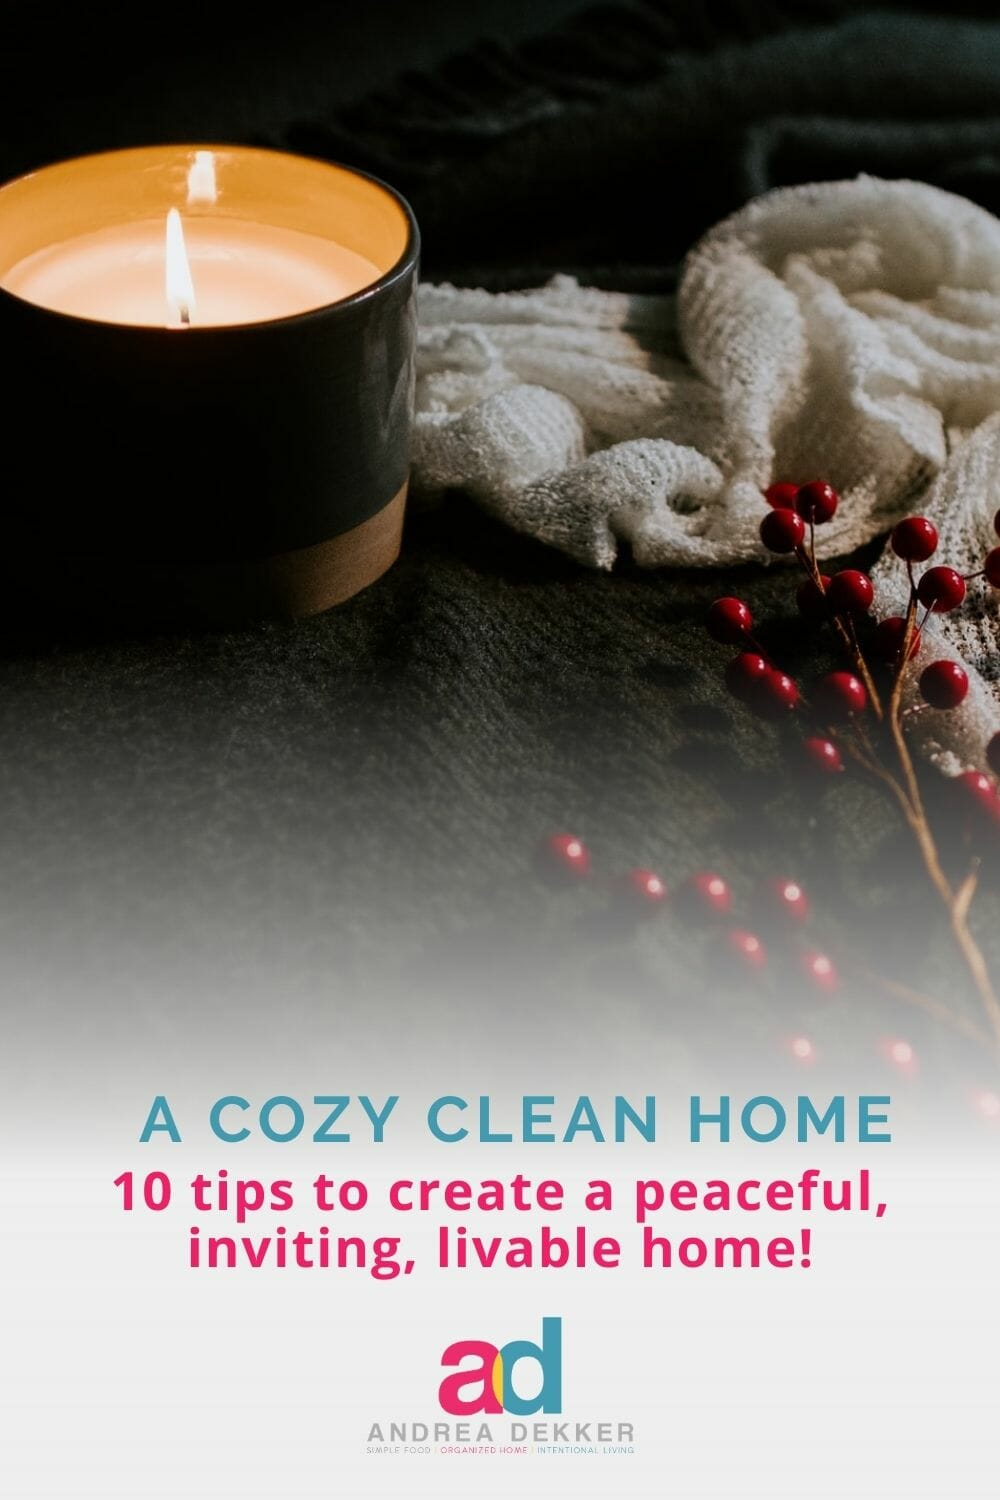 Cozy Clean is my way of describing a home that feels peaceful, inviting, yet still livable. If that sounds like the feeling you want for YOUR home, keep reading for 10 simple tips to help you create a cozy clean home! via @andreadekker